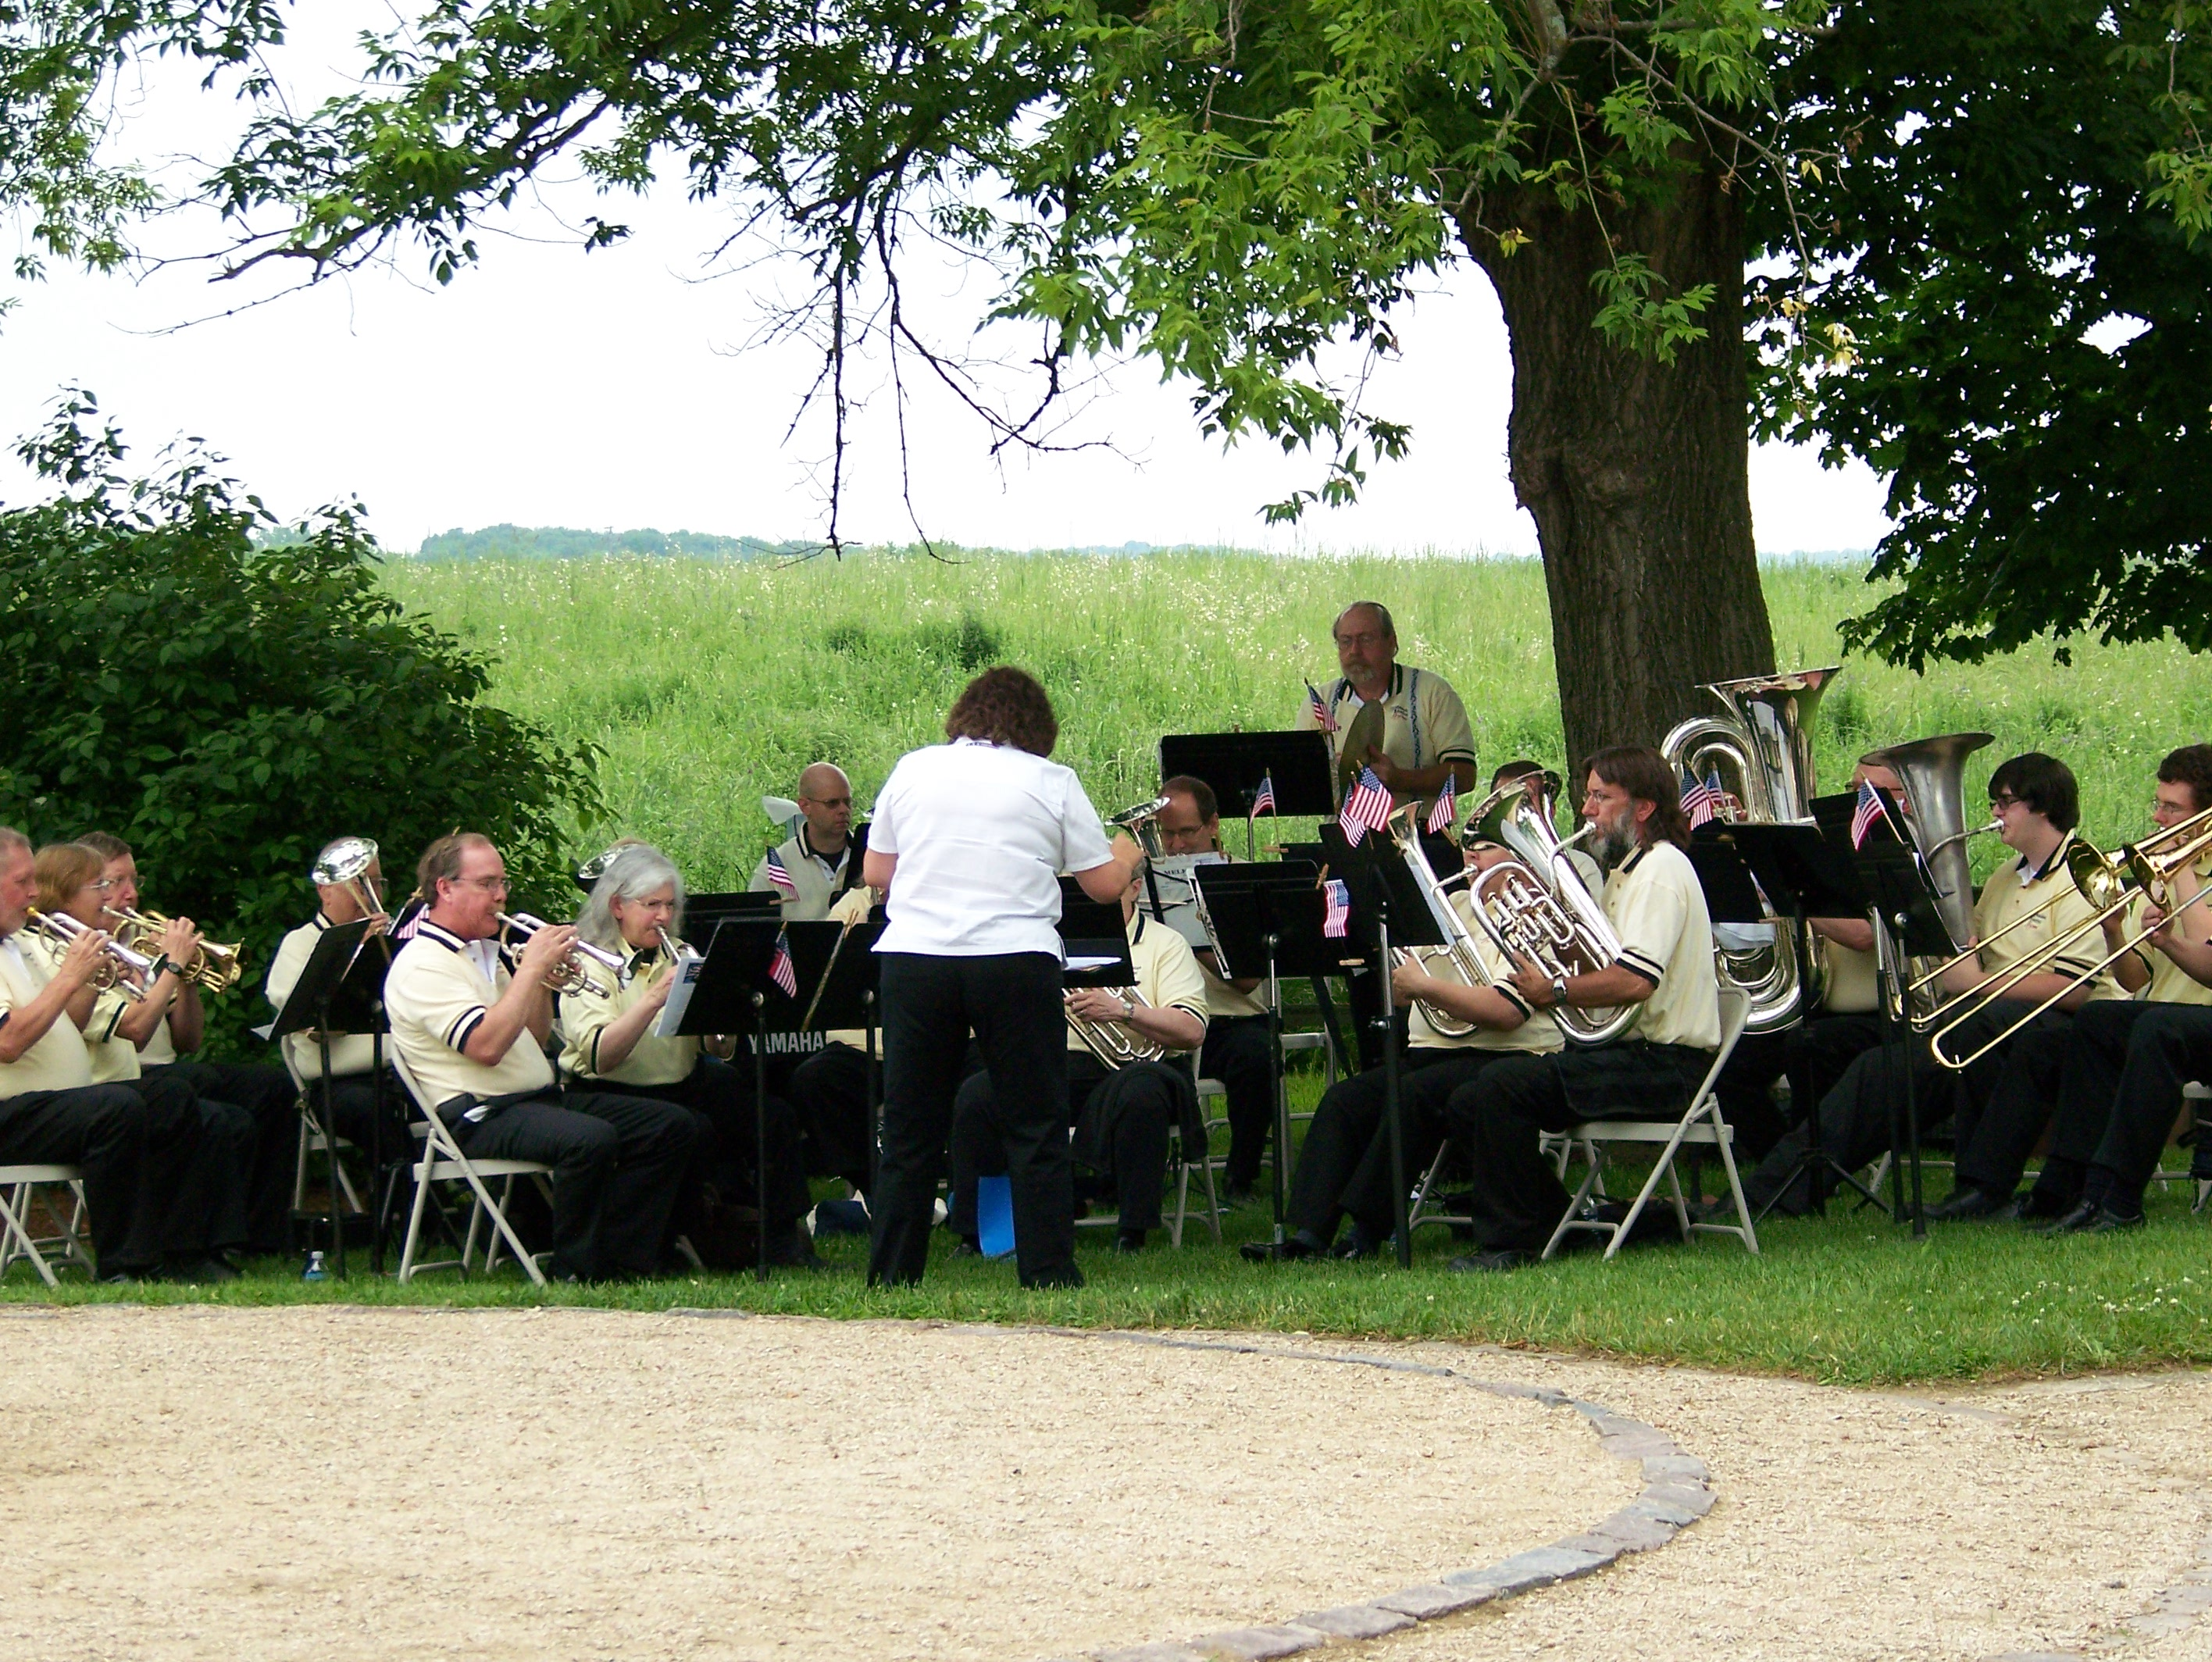 A Lovely Orchestra Playing Under a Tree